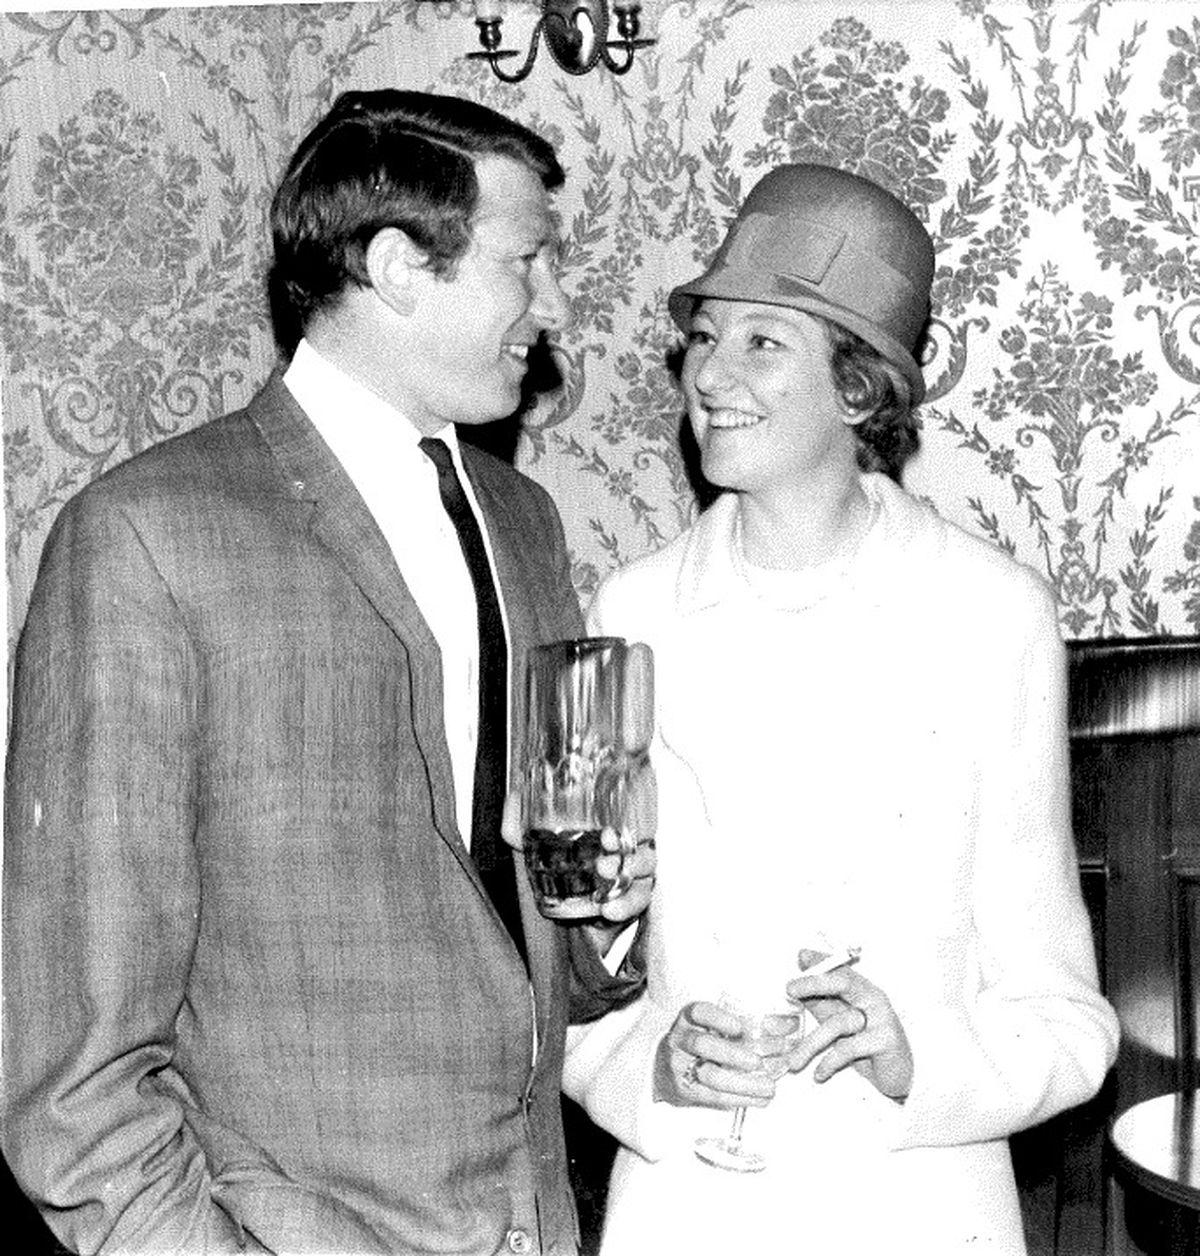 Susan and Peter's wedding day in May 1967 in Wolverhampton, when she was aged 28